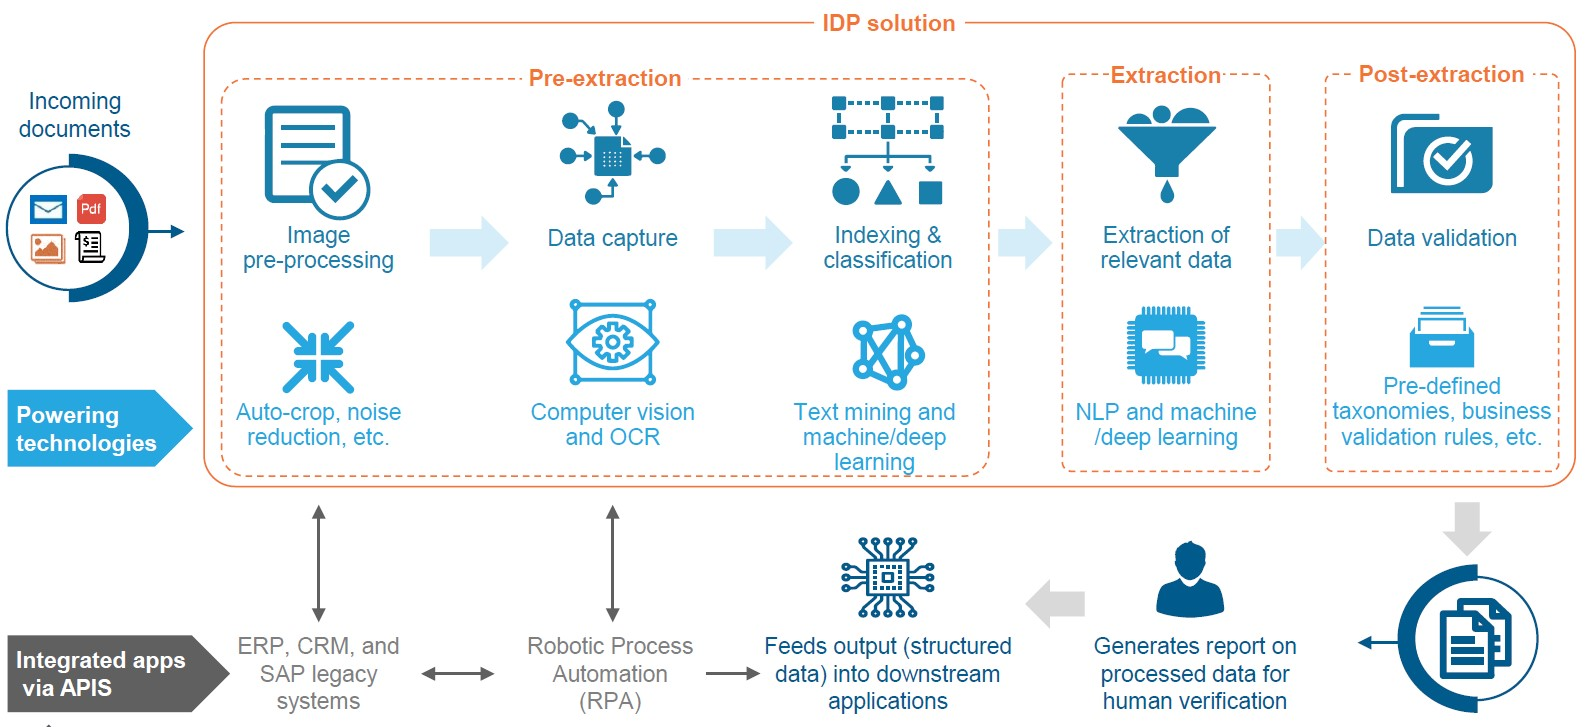 IDP versus OCR: making data processing smarter with AI/ML capabilities